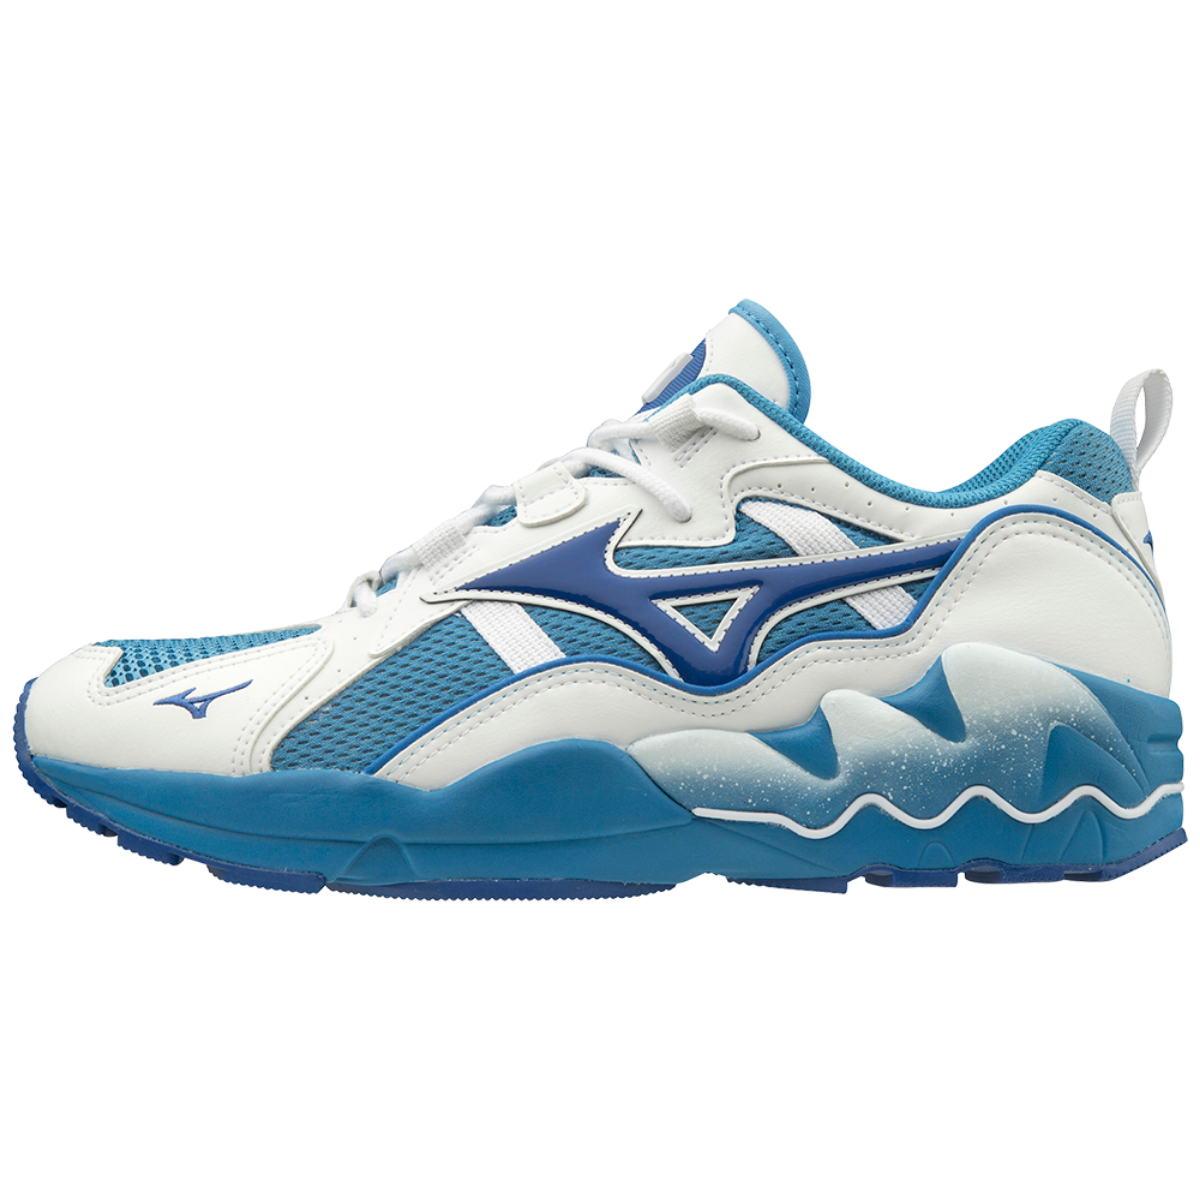 WAVE RIDER 1 UNISEX Cendre Blue/ True Blue/ White